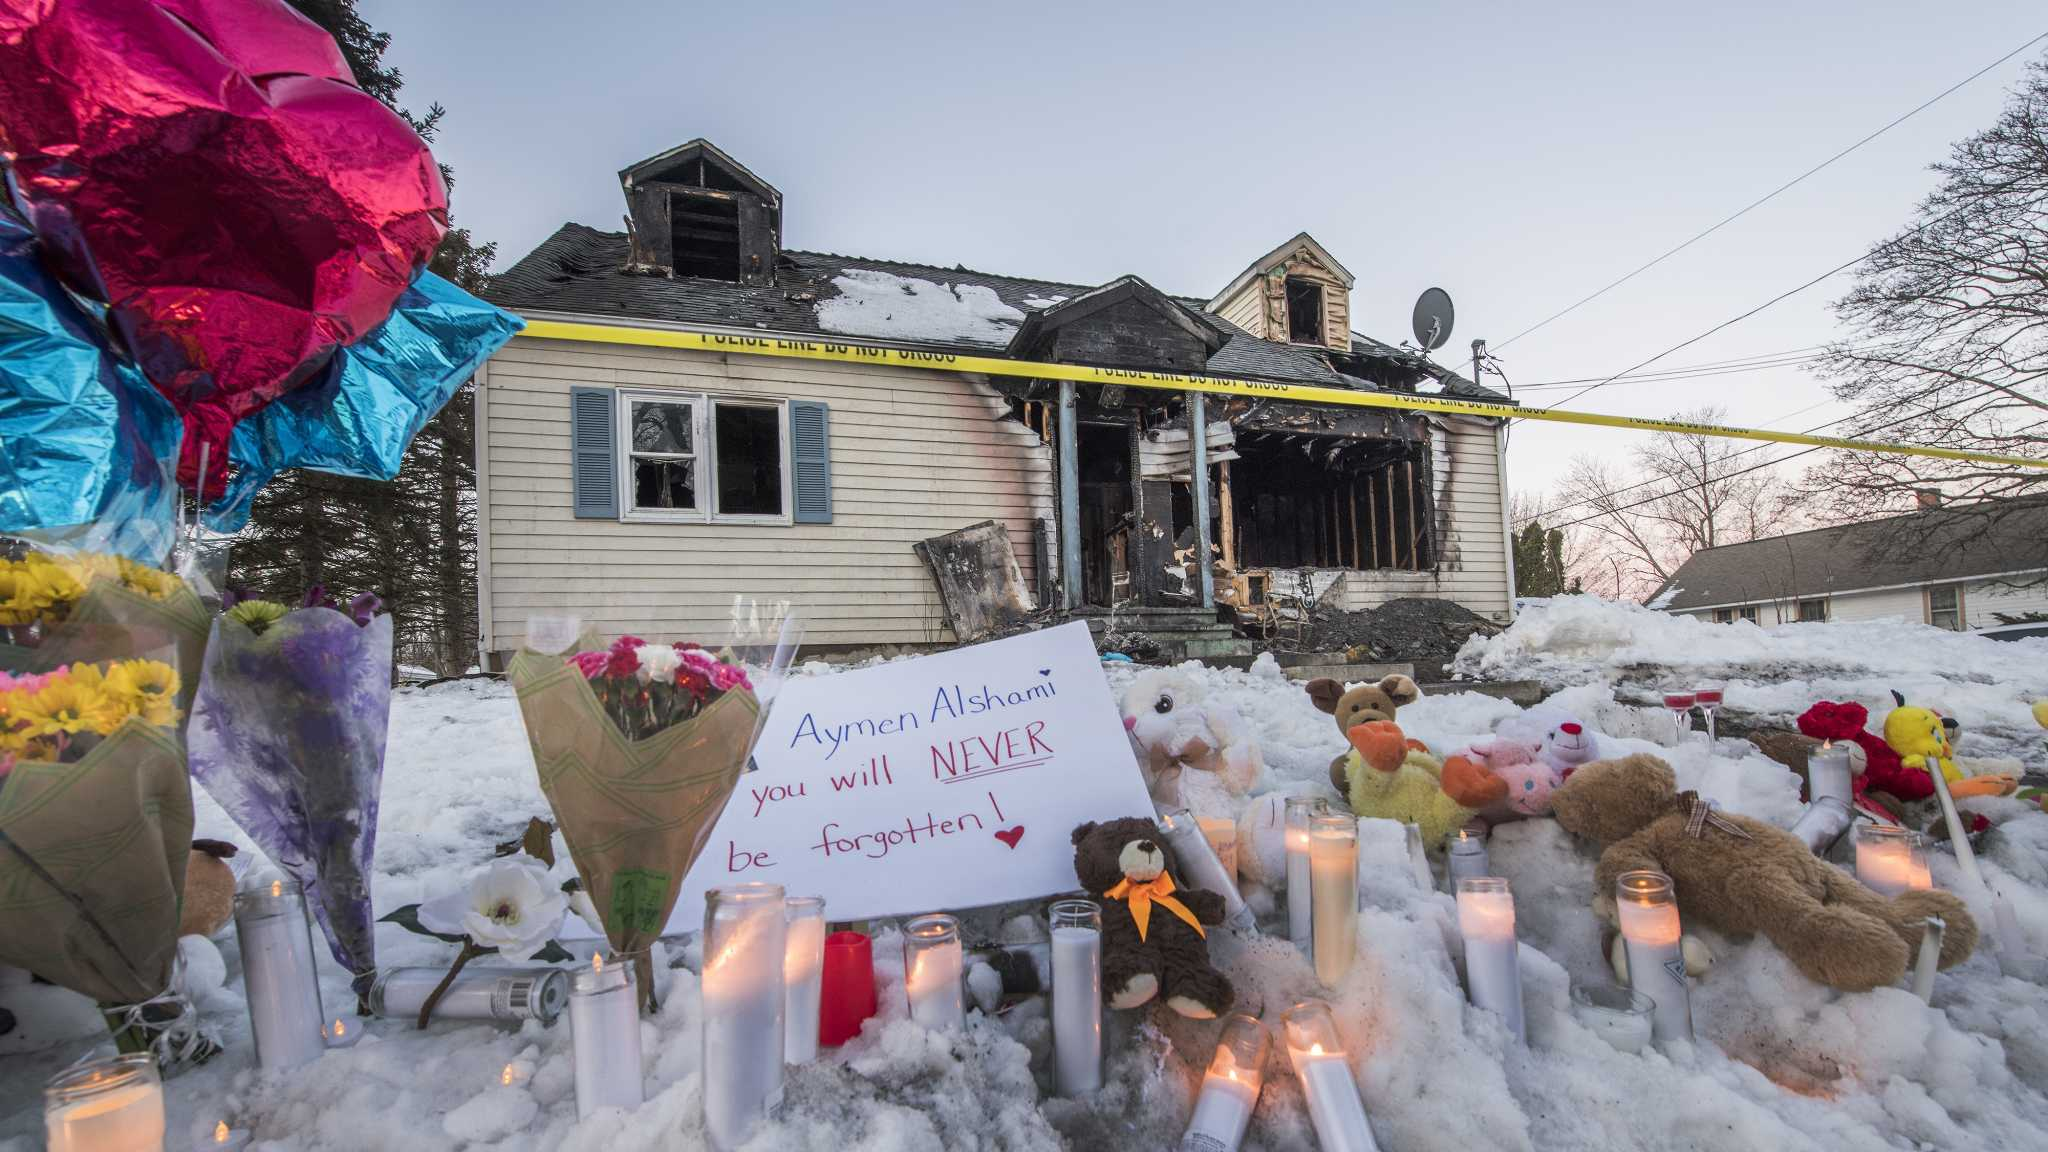 A makeshift memorial was set up in front of the burned out shell of a home which is all that is left of 900 Mann Avenue Monday March 12, 2018 after two adults and one child lost their lives in a multi-alarm fire which occurred early Sunday morning  in Rensselaer, N.Y. (Skip Dickstein/Times Union)